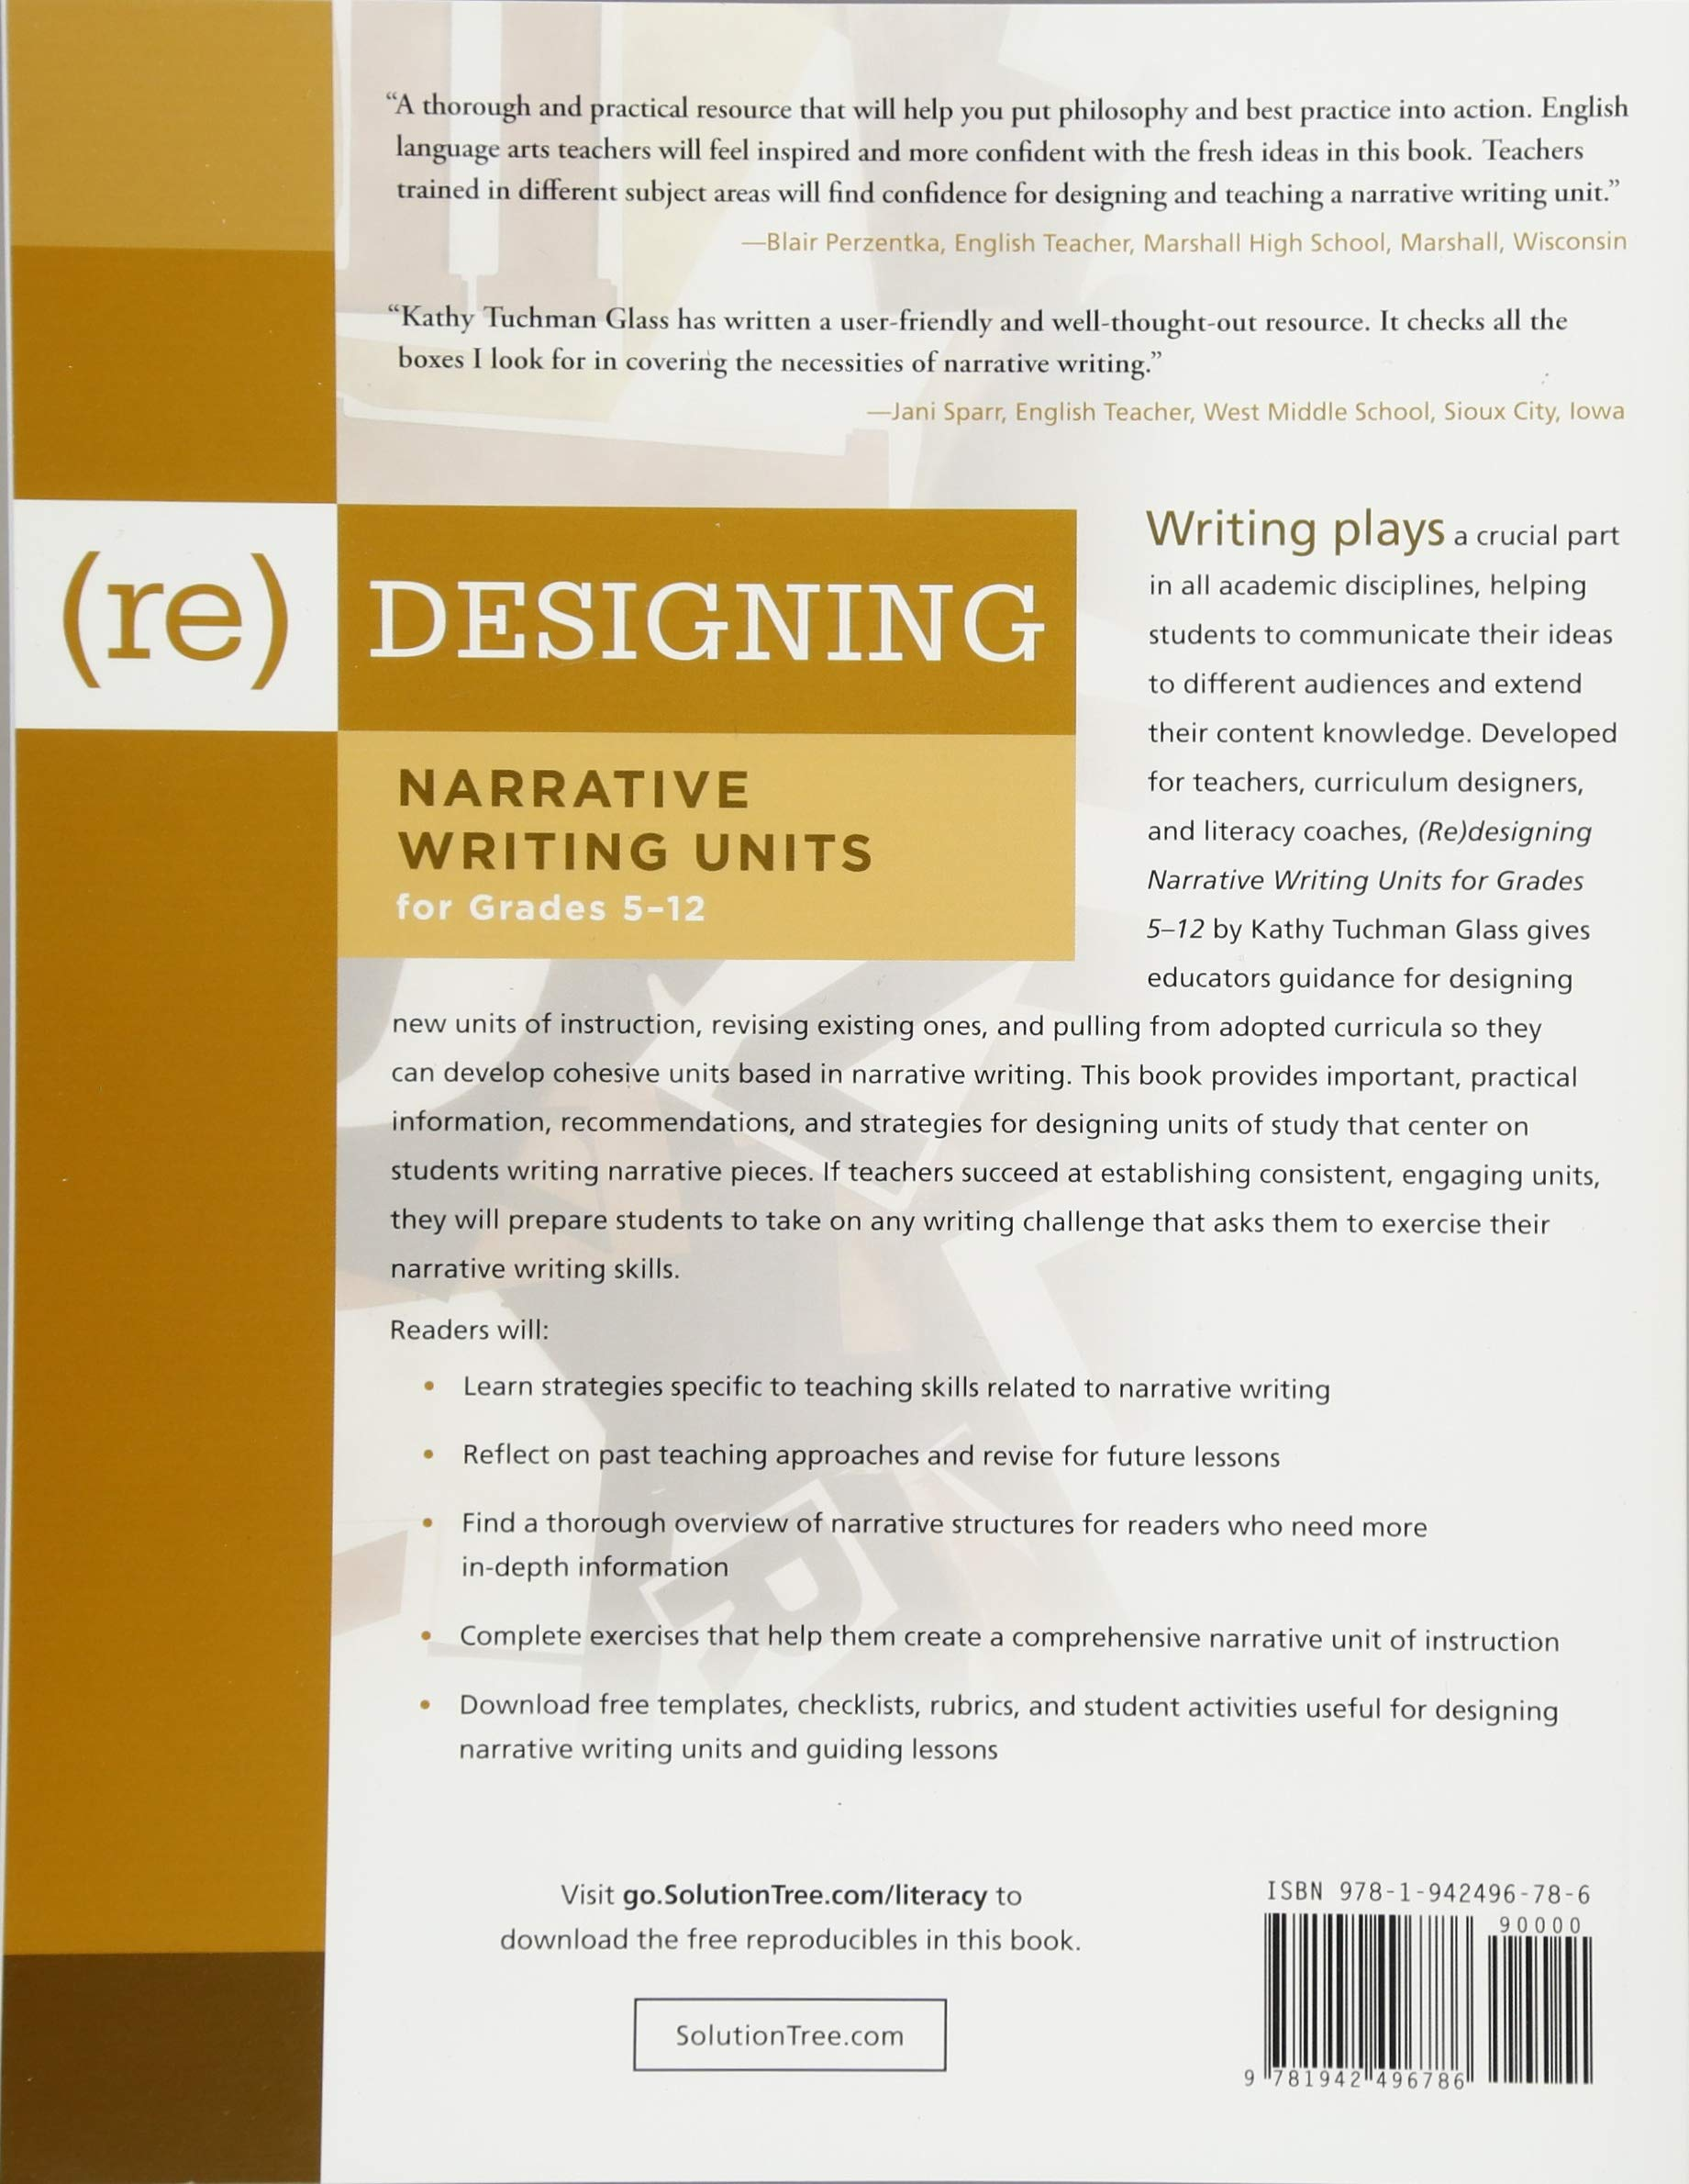 re-Designing Narrative Writing Units for Grades 5-12: Kathy Tuchman